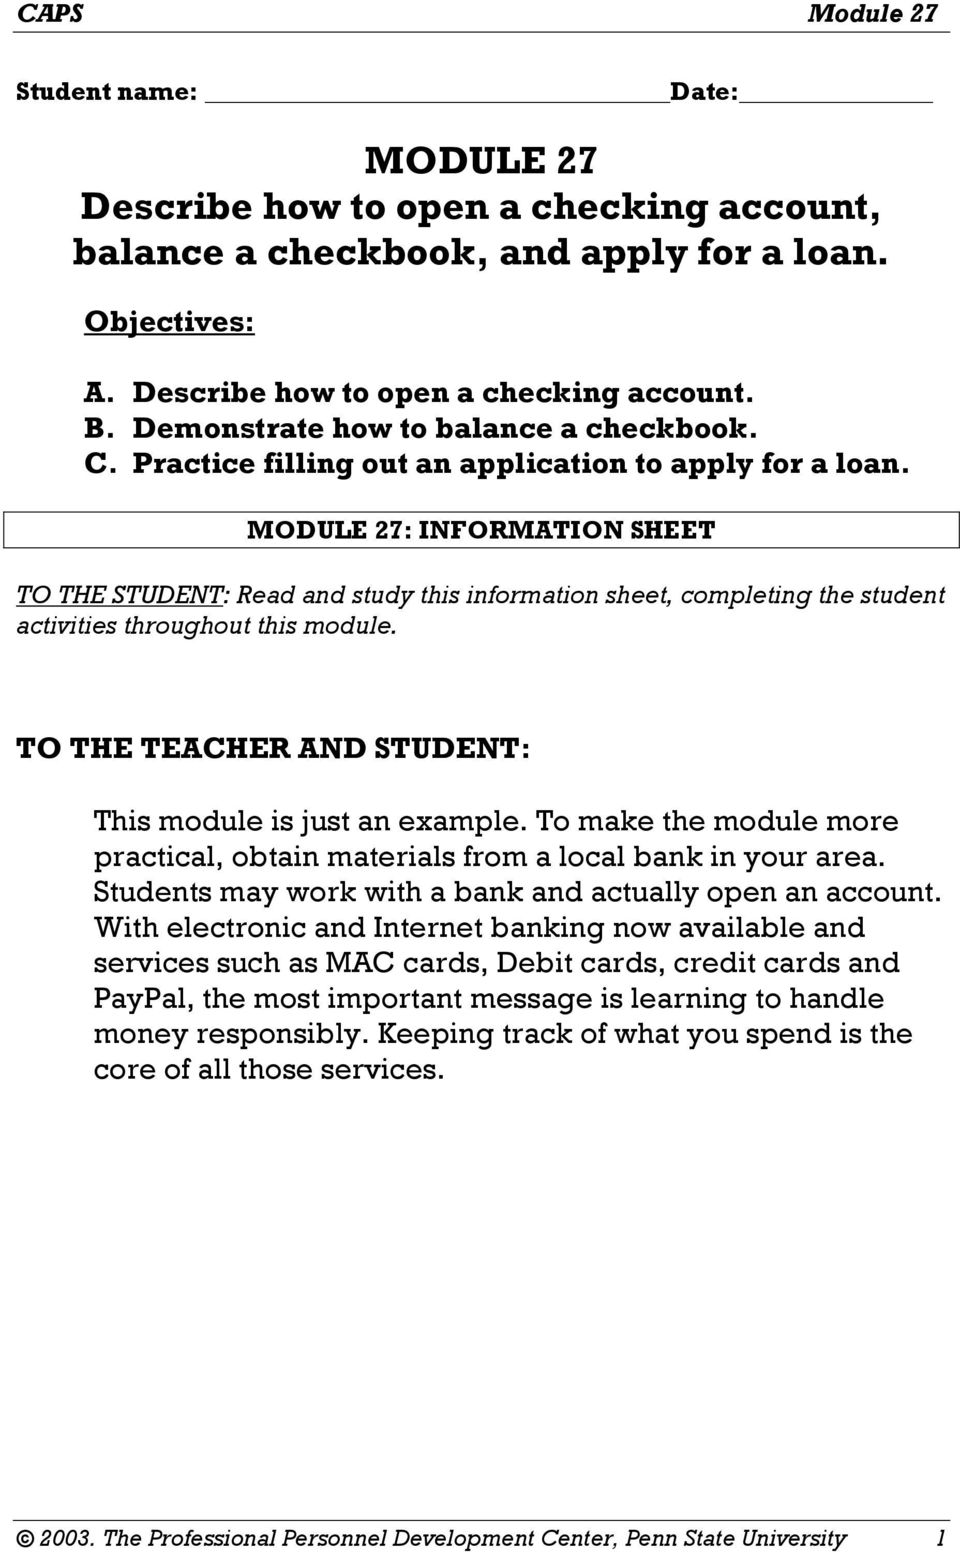 module 27 describe how to open a checking account balance a